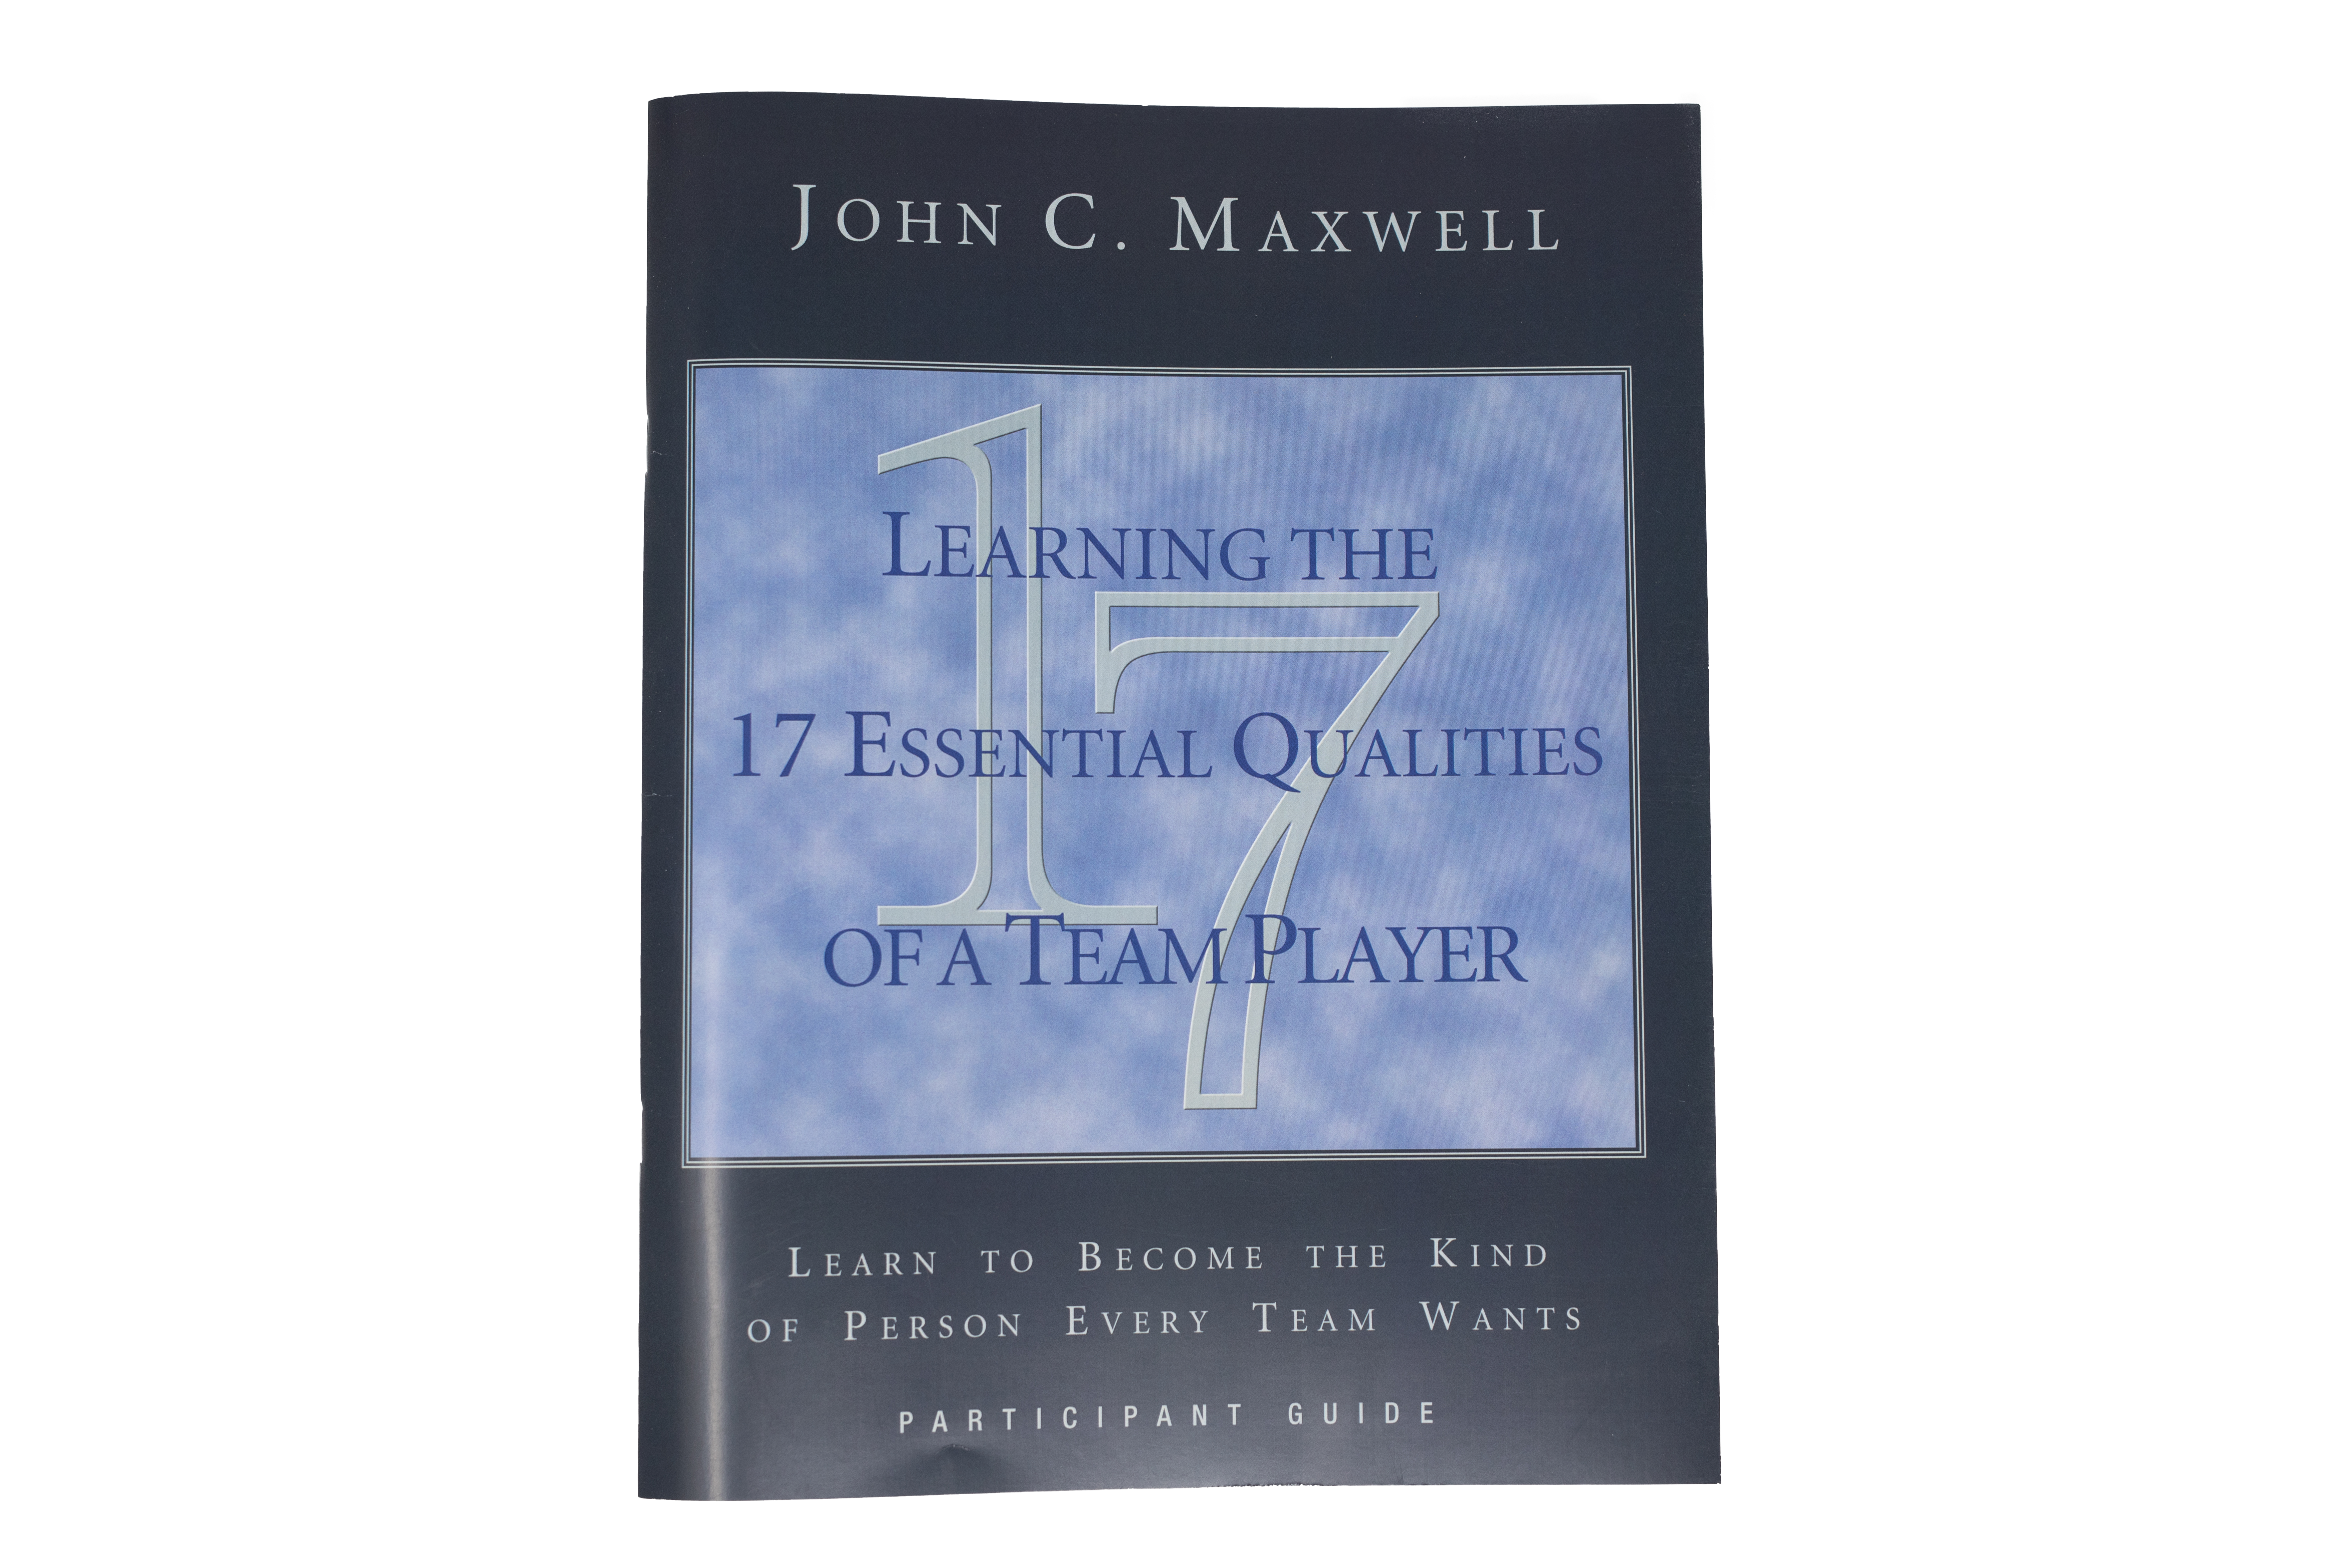 The 17 Essential Qualities of a Team Player Participant Guide